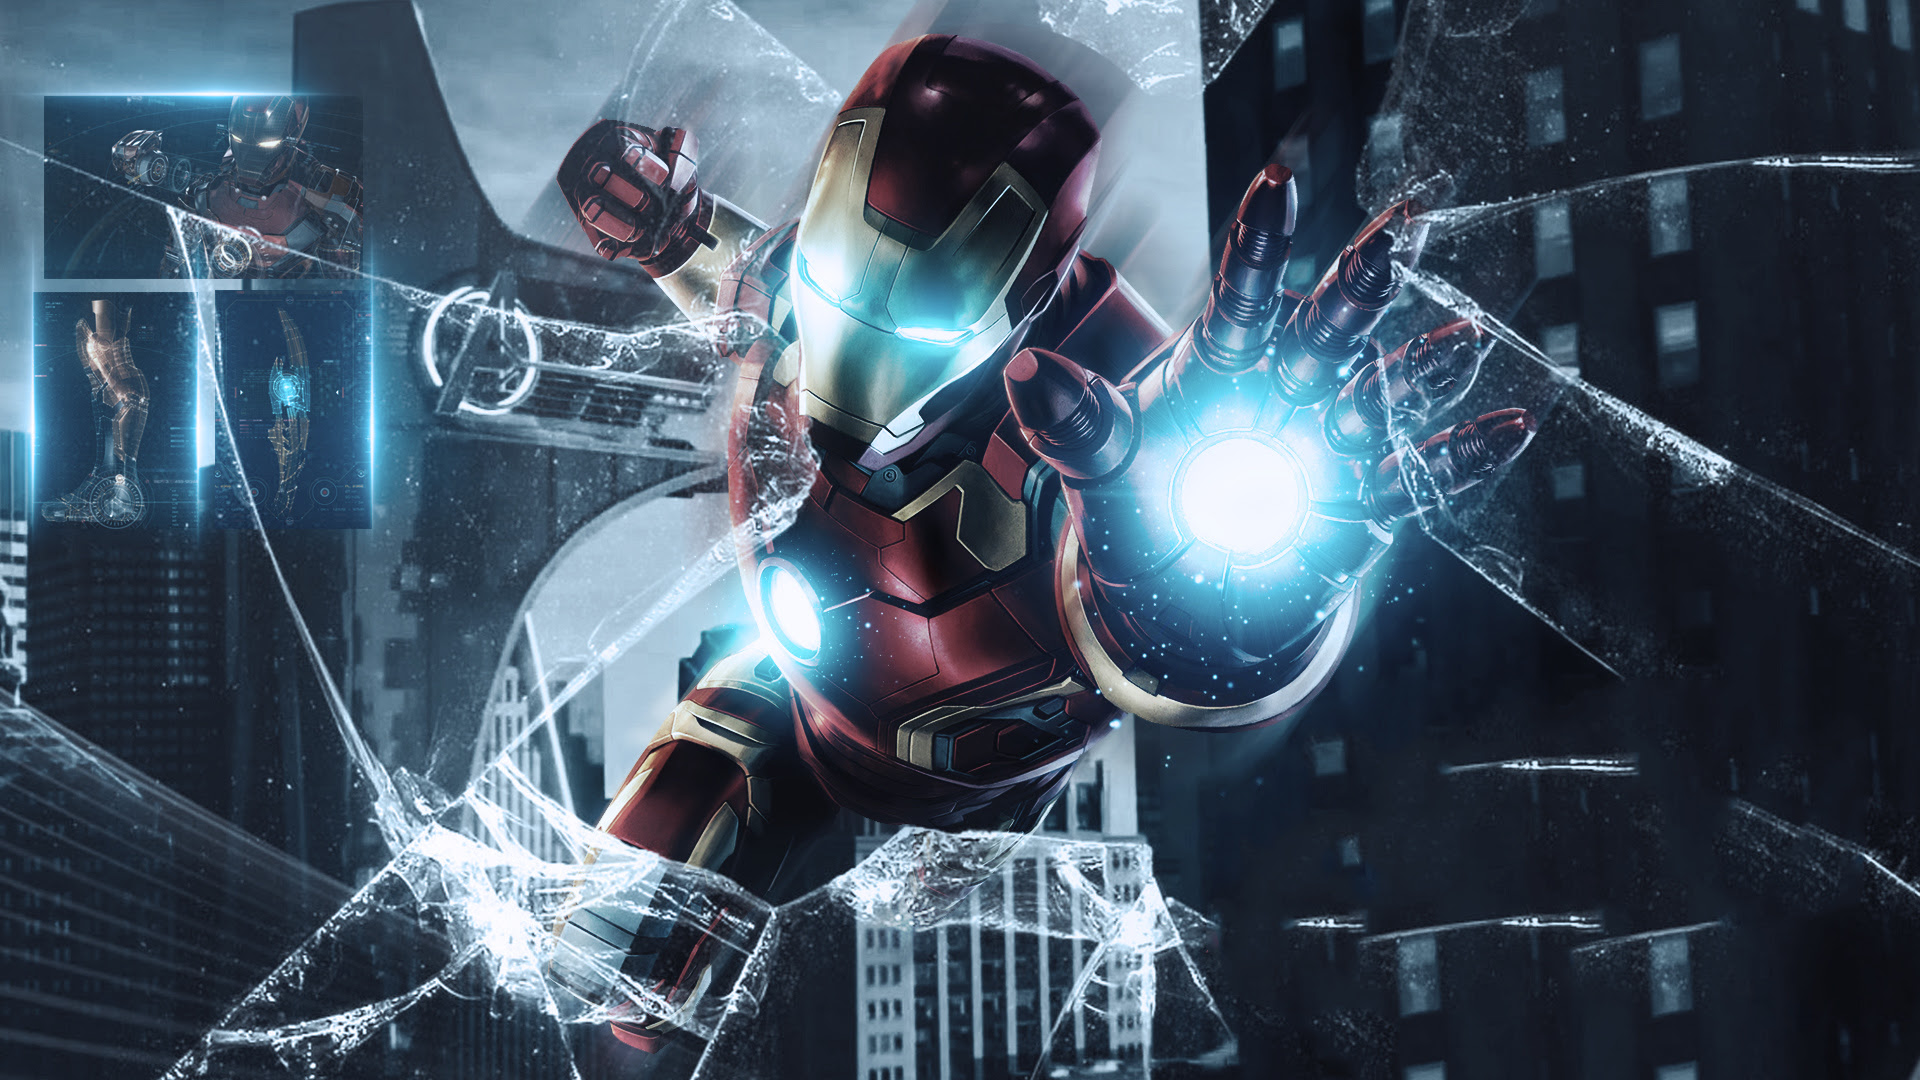 Download Avengers Endgame Wallpaper 4k Iron Man Cikimmcom